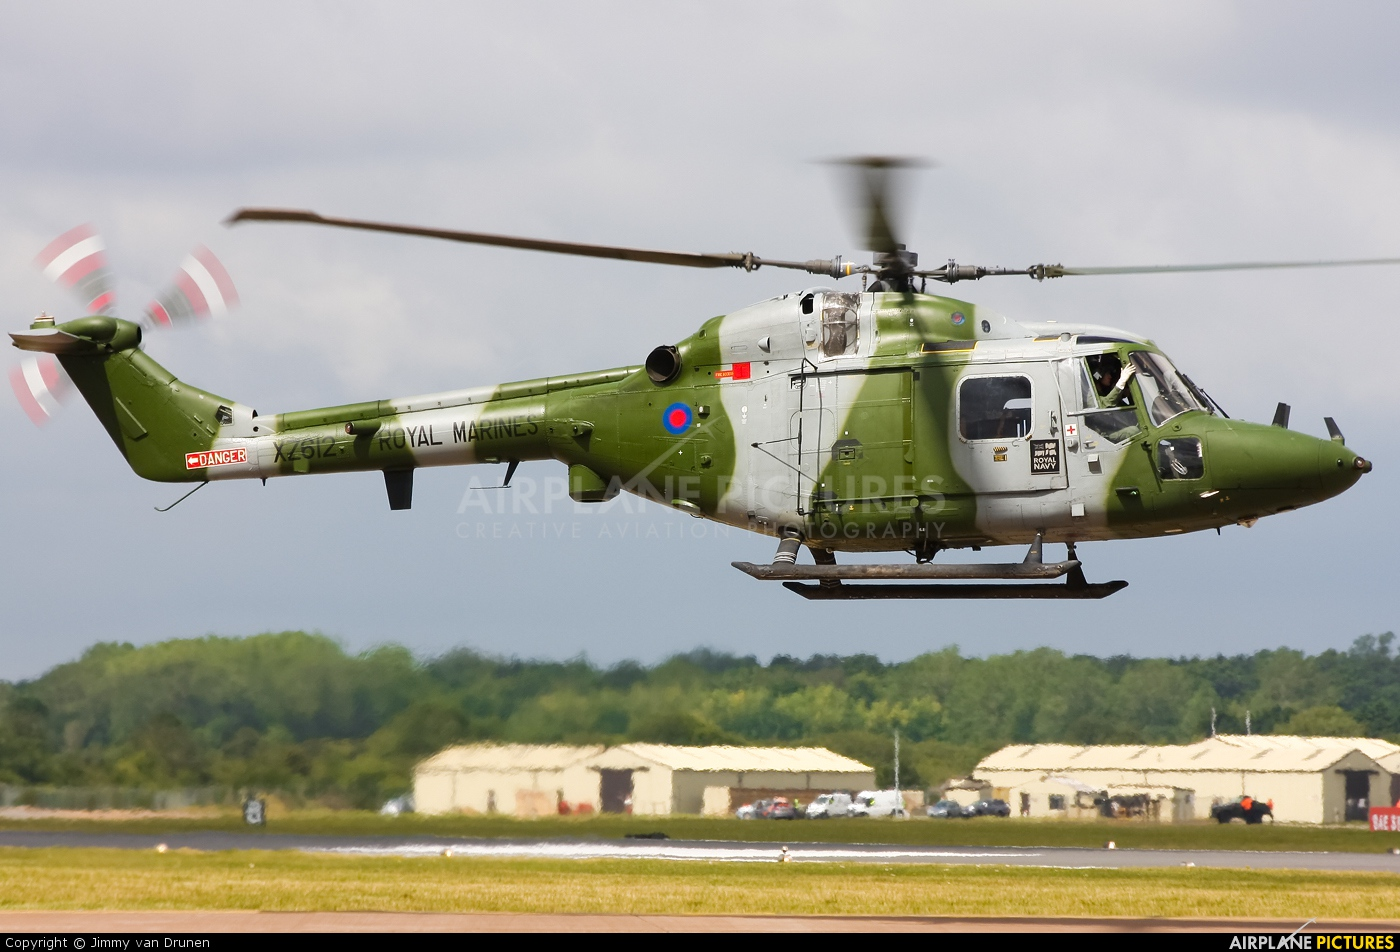 Royal Navy: Royal Marines XZ612 aircraft at Fairford